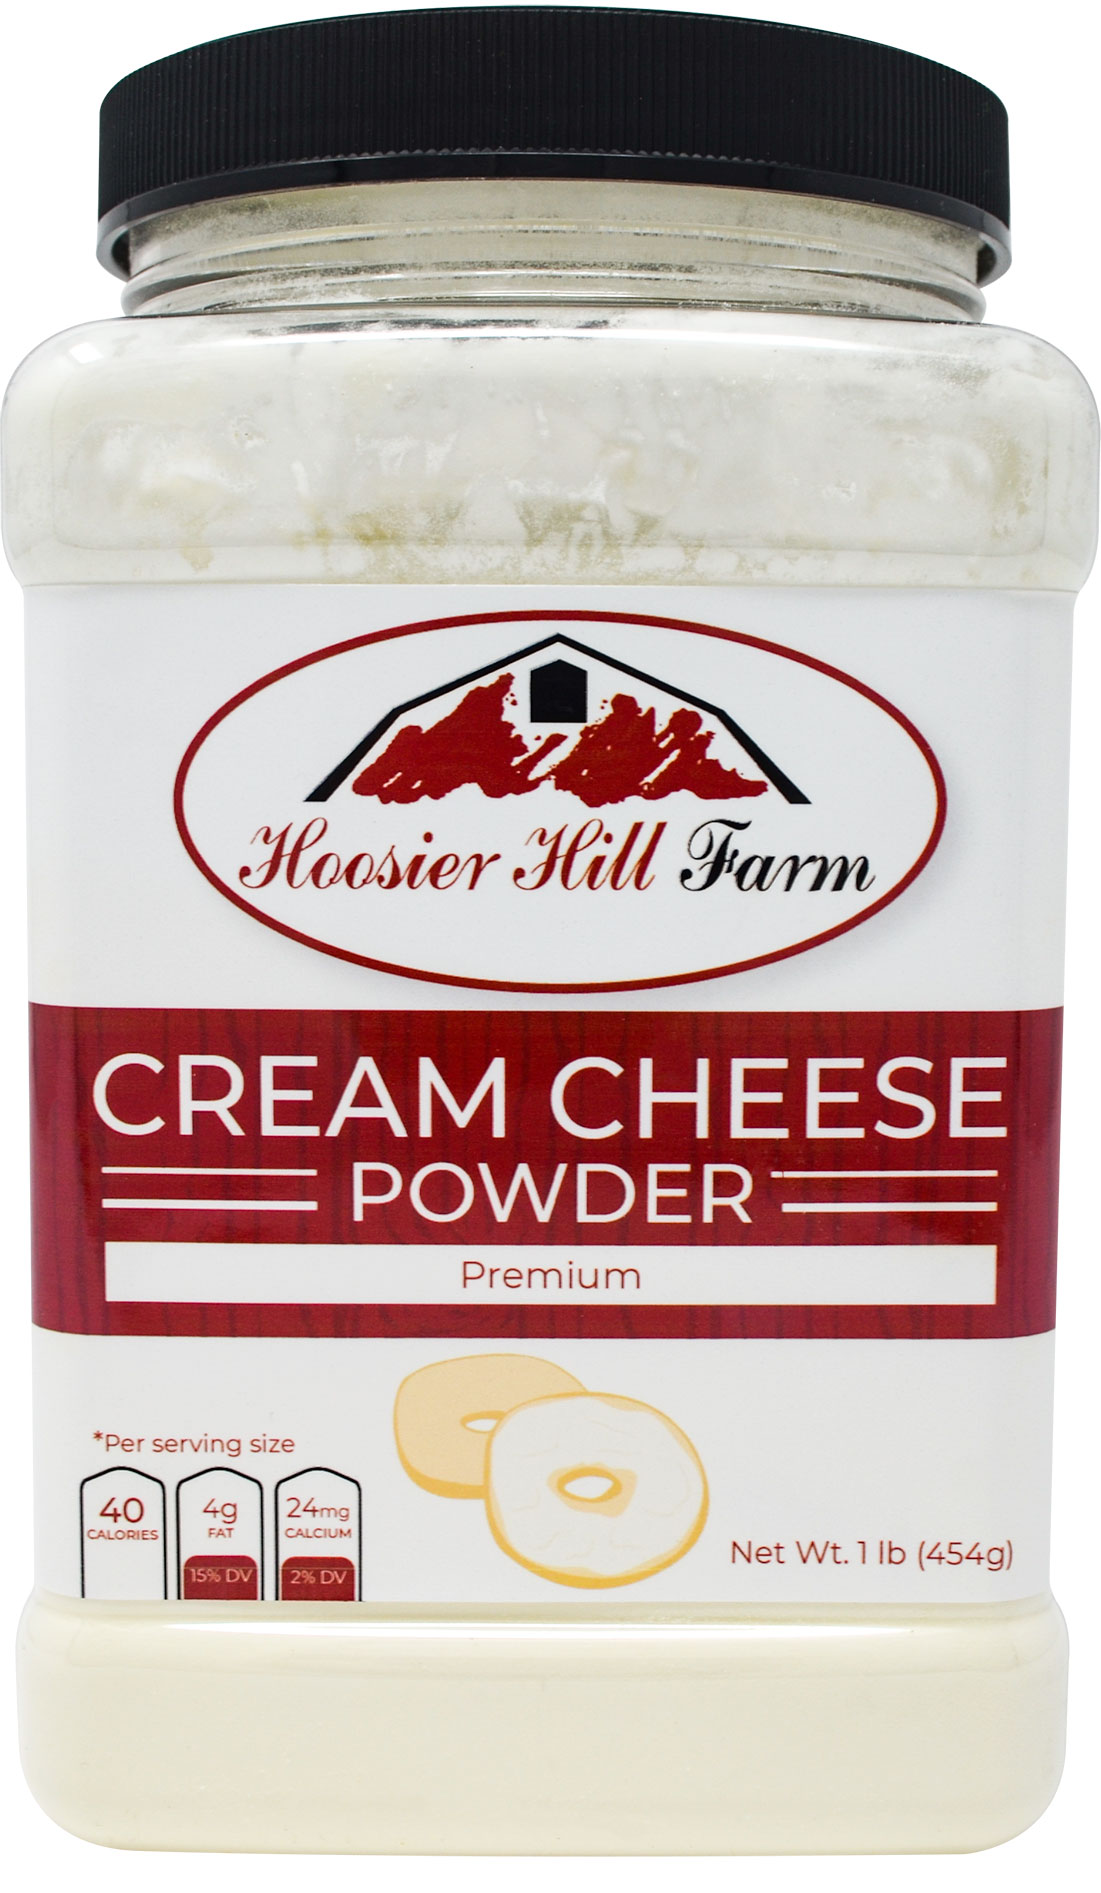 Cream Cheese powder, 1 Lb.